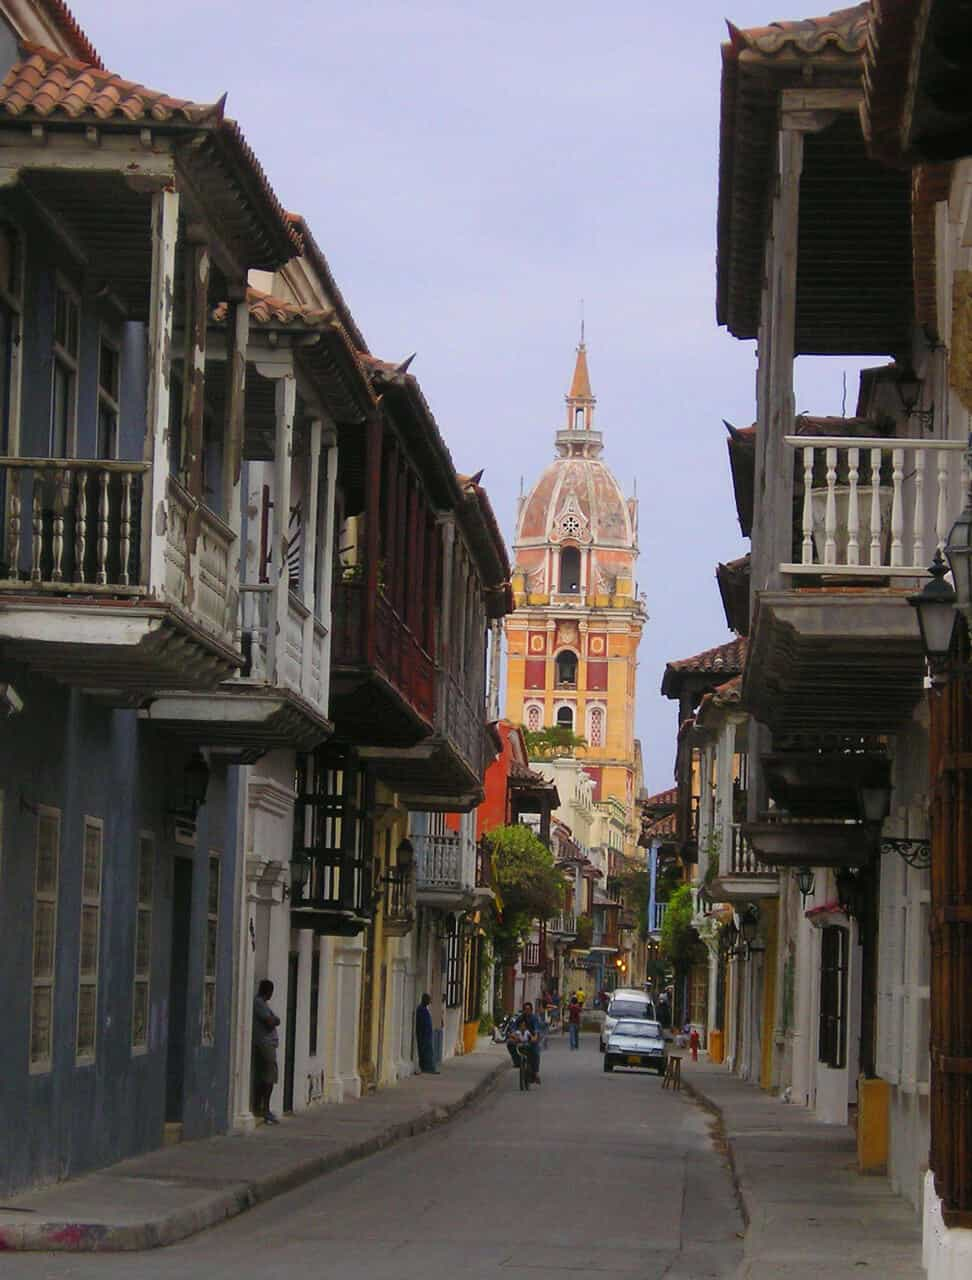 Street views, What's Cartagena (Colombia) like? Here's why it's incredible